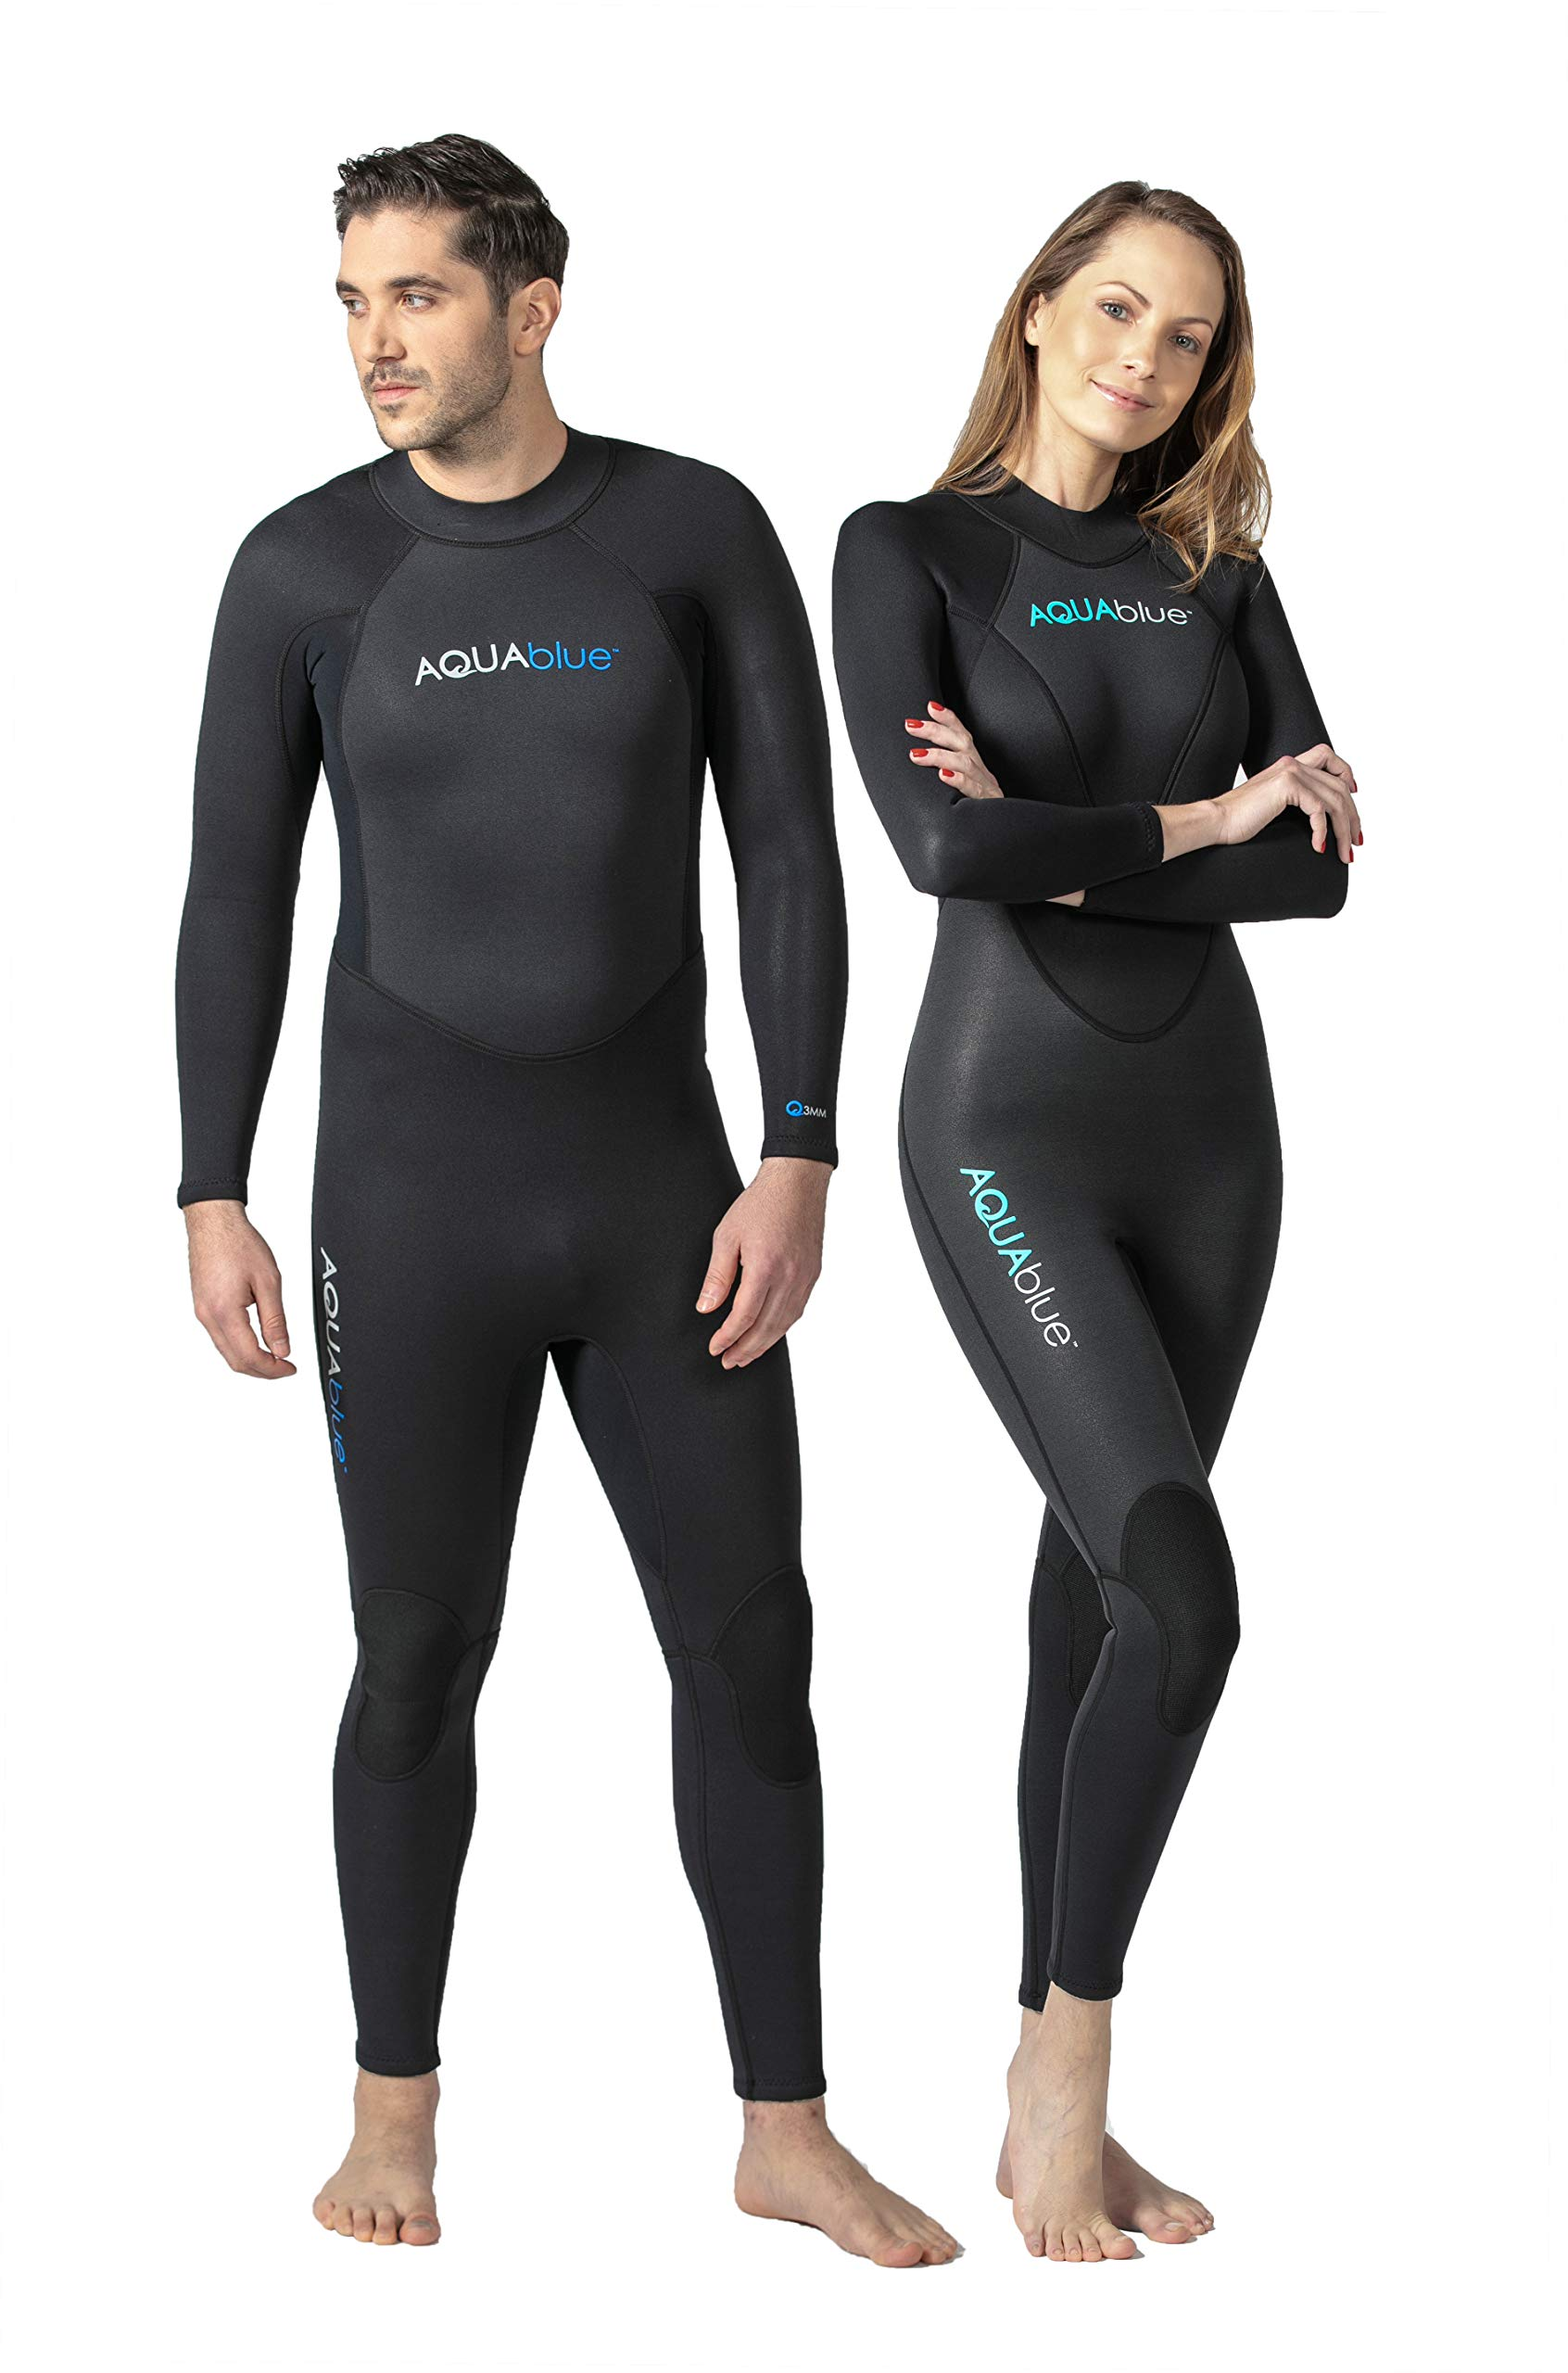 Aqua Blue Men's and Women's 3mm Neoprene Wetsuit with Super Stretch, Perfect for Surfing, Diving, Snorkeling, All Water Sports. (Womens 6) by AQUAblue